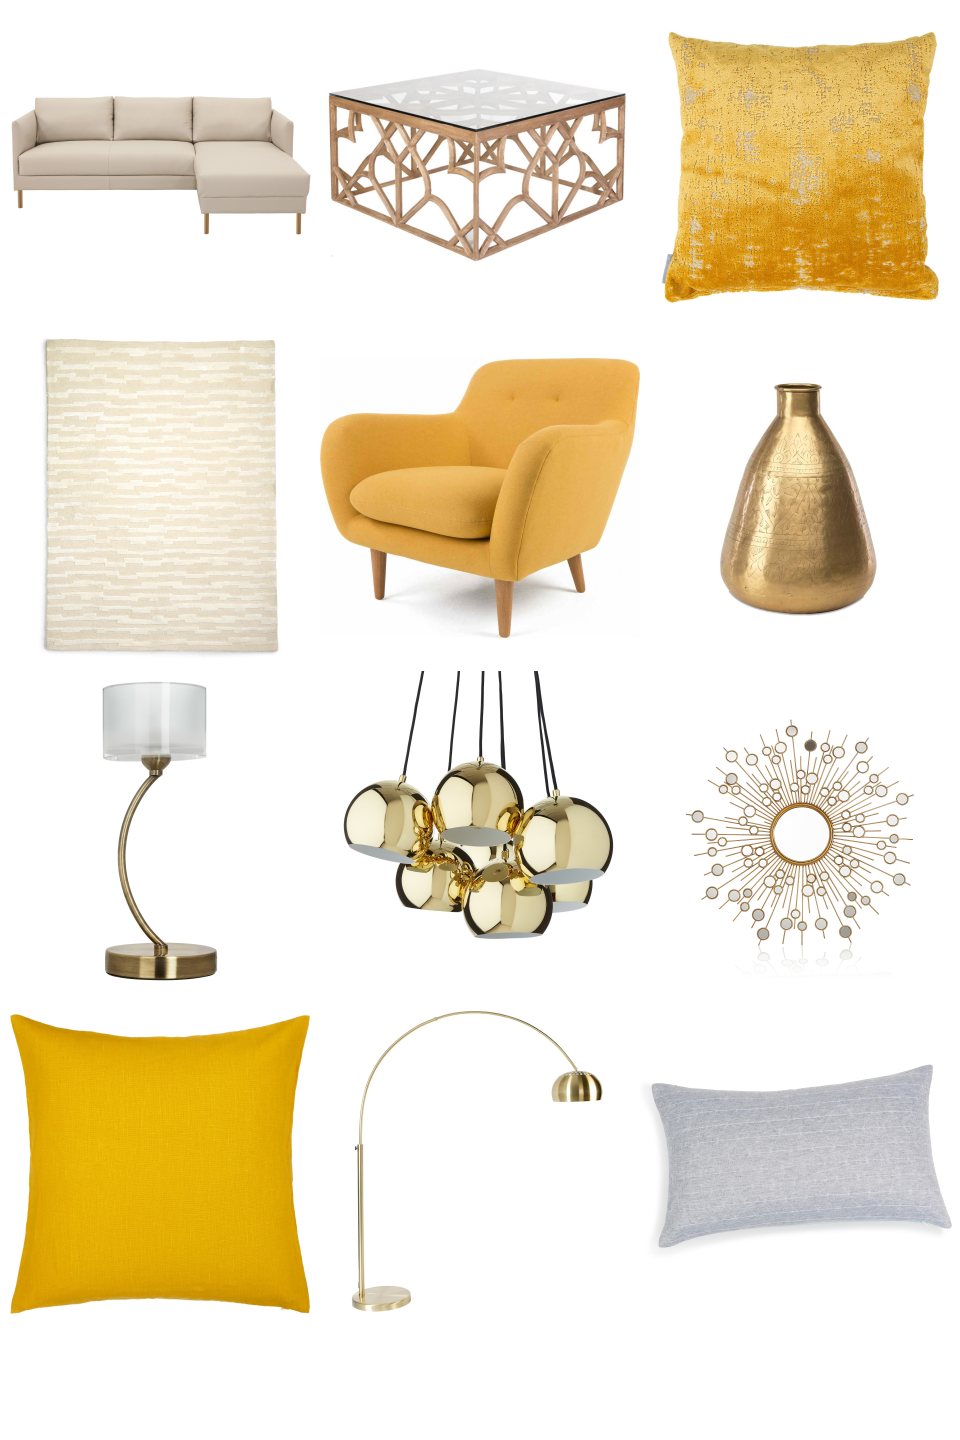 Opulent Yellow And Gold Living Room Inspiration Board. Luxurious Yellow And  Golden Hues   With